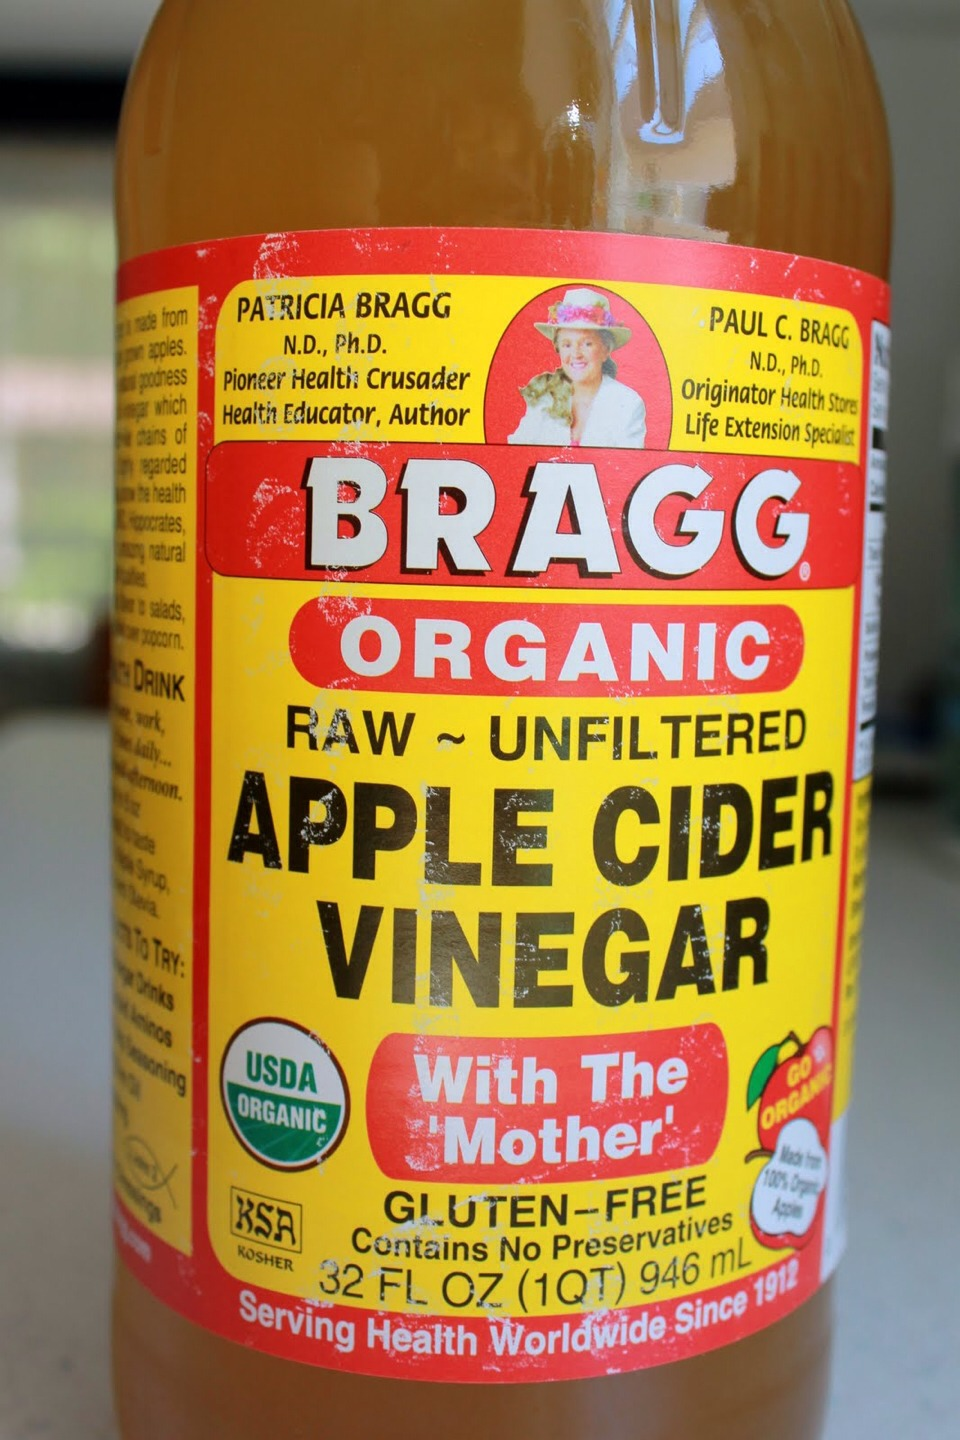 After shaving or waxing, put a small amount of the apple cider vinegar a cotton pad and apply to the area!